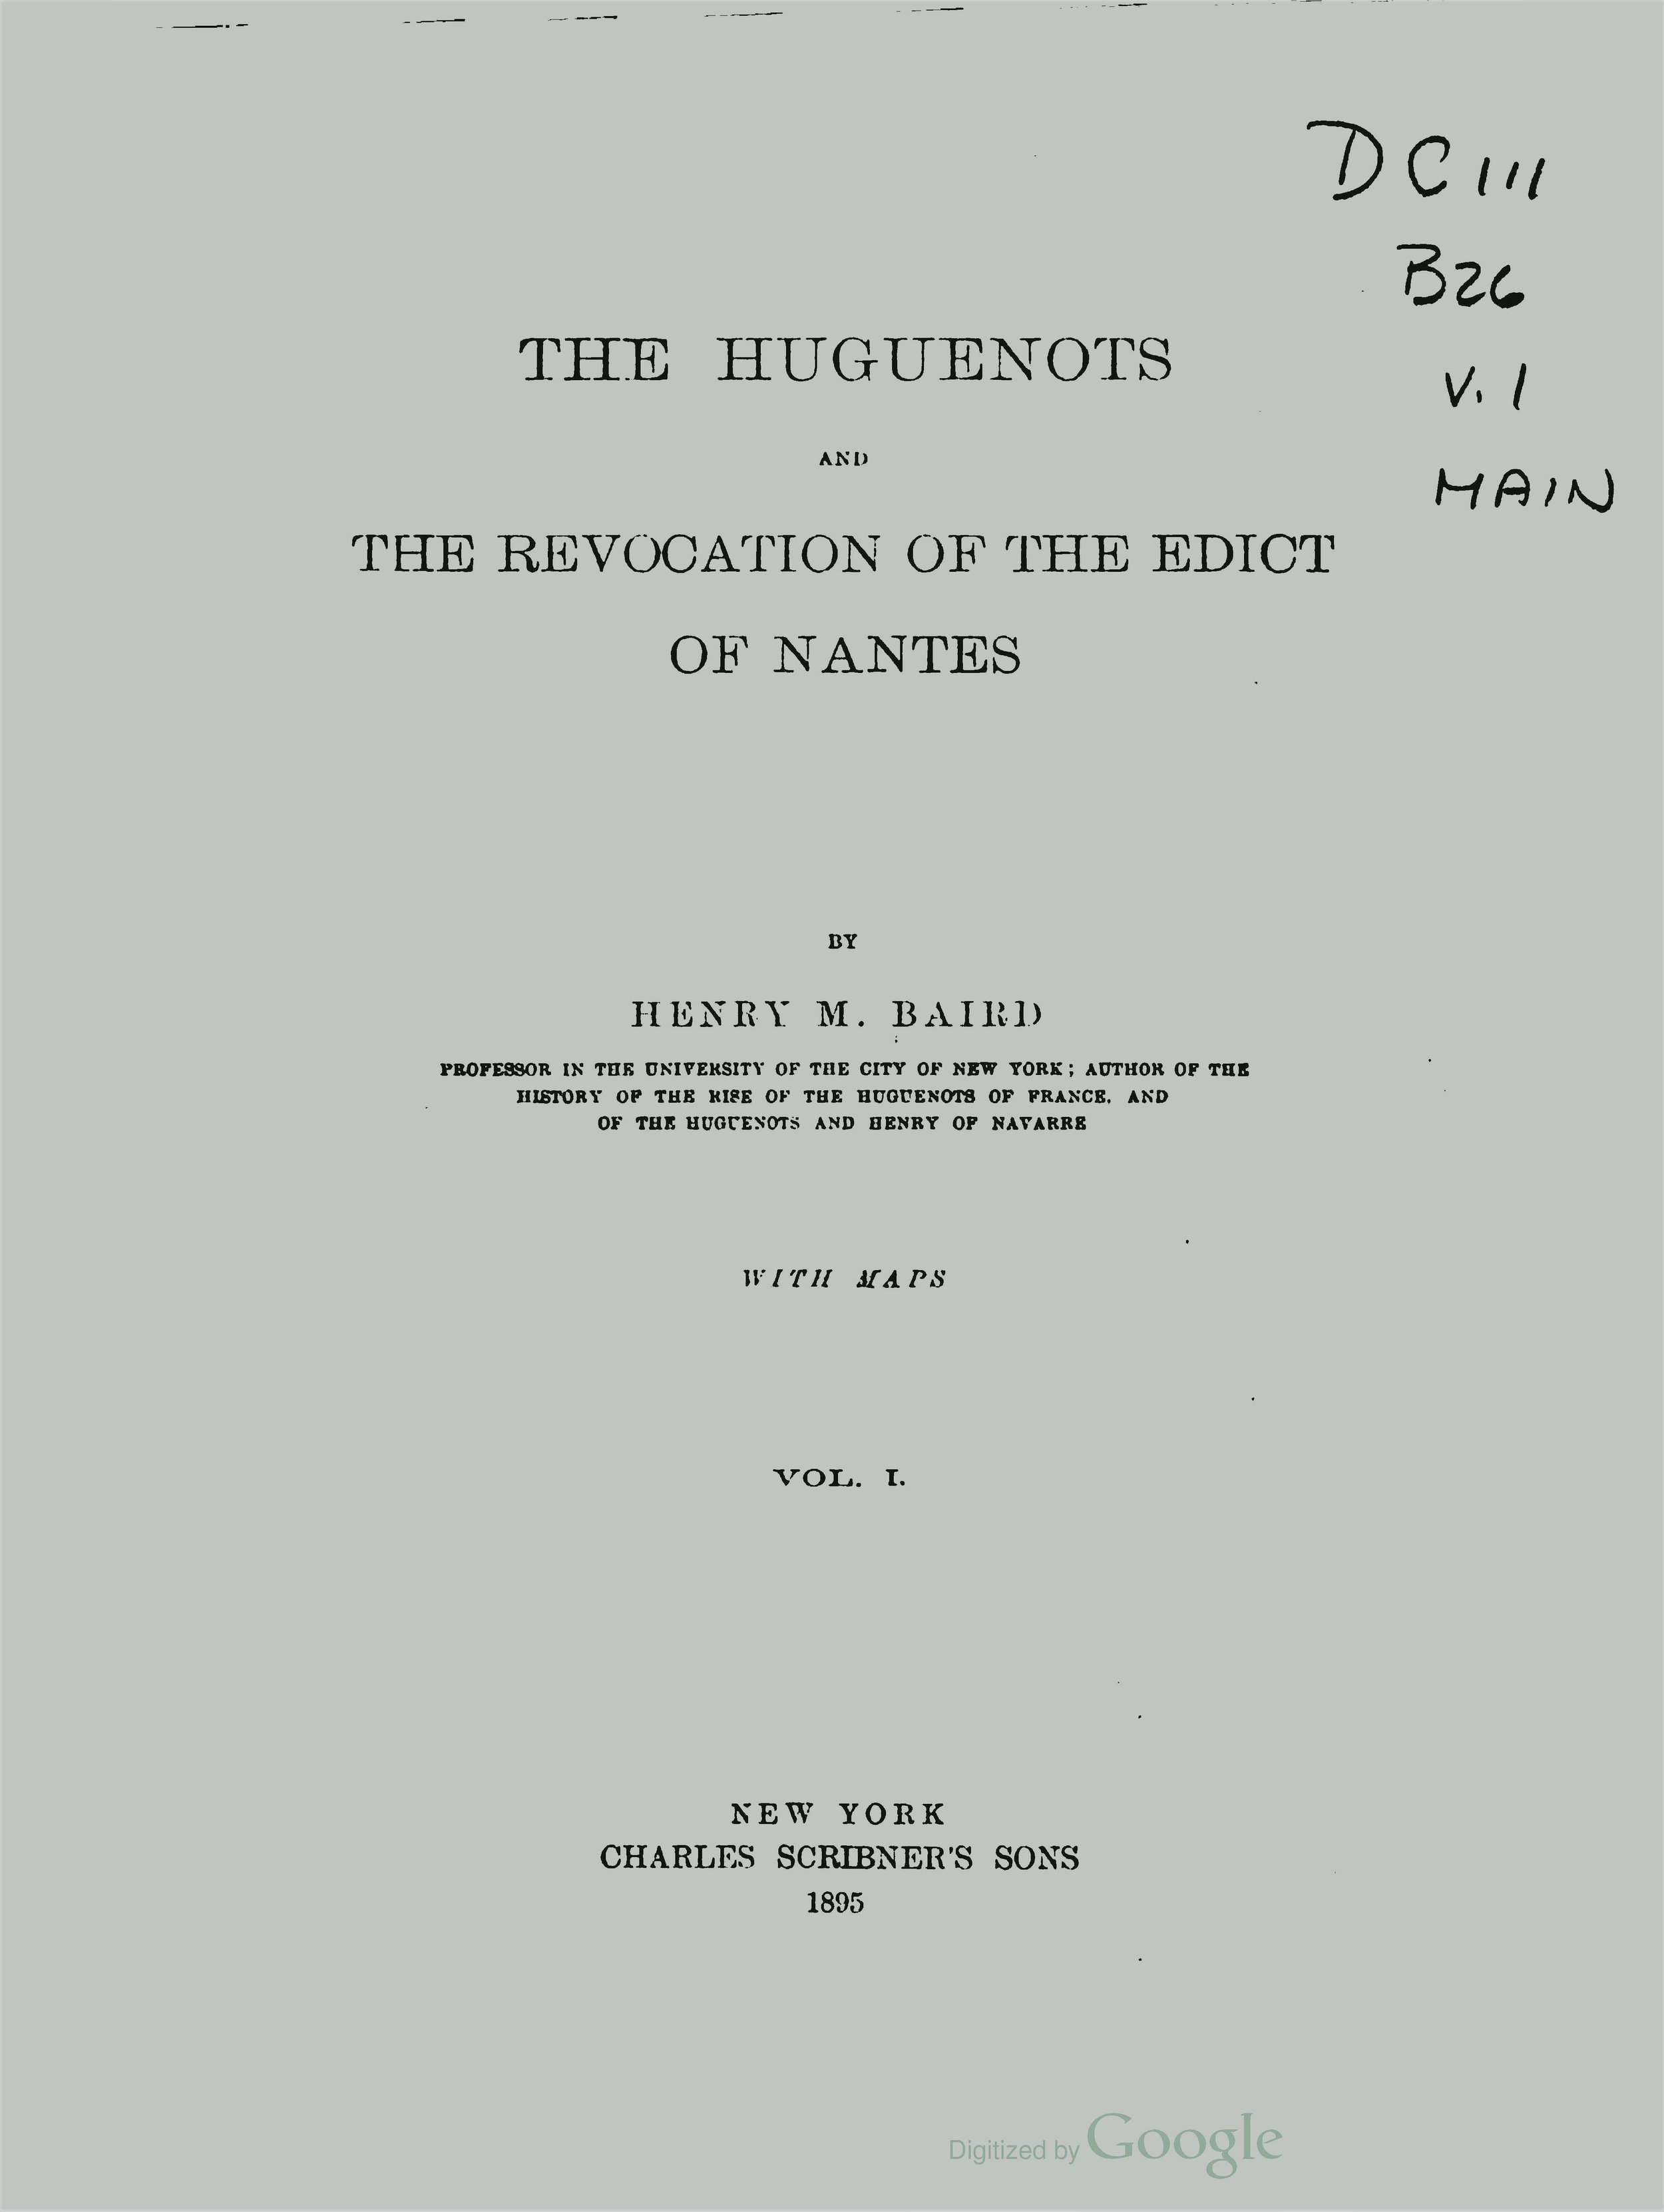 Baird, Henry Martyn, The Huguenots and the Revocation of the Edict of Nantes, Vol. 1 Title Page.jpg